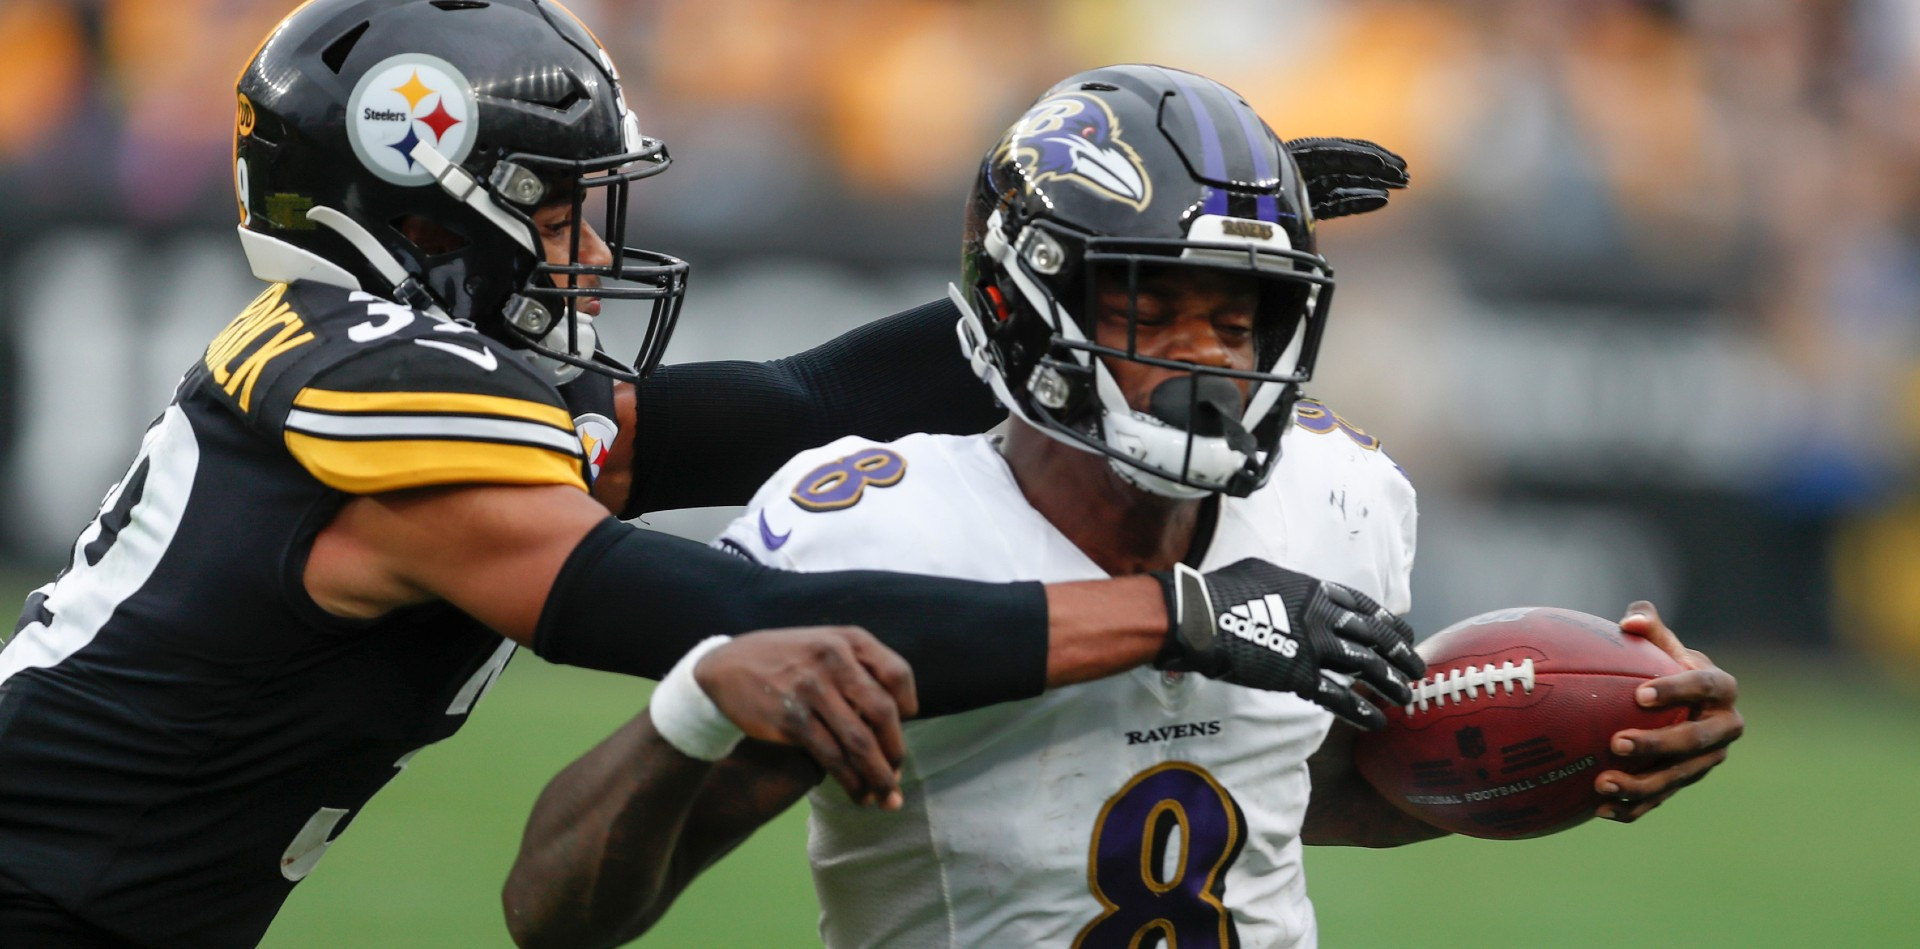 Steelers Underdogs at Ravens in Huge AFC North Battle